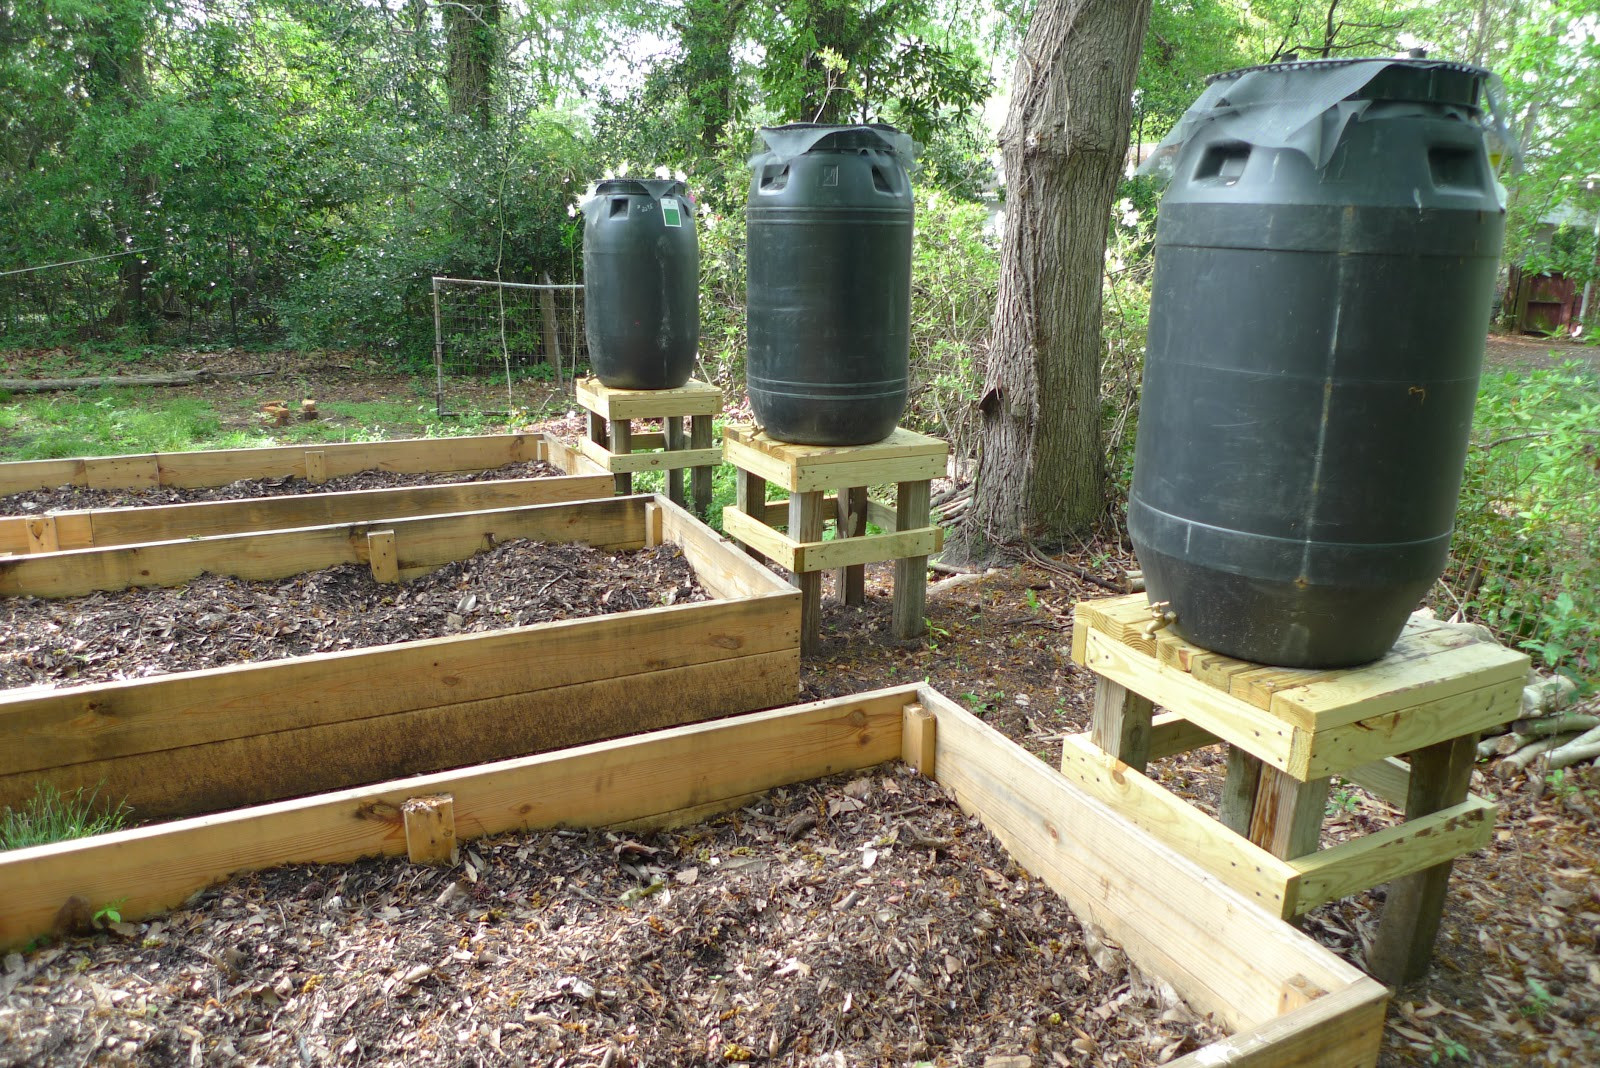 Best ideas about Rain Barrel DIY . Save or Pin Rain barrels collection for gardening Now.